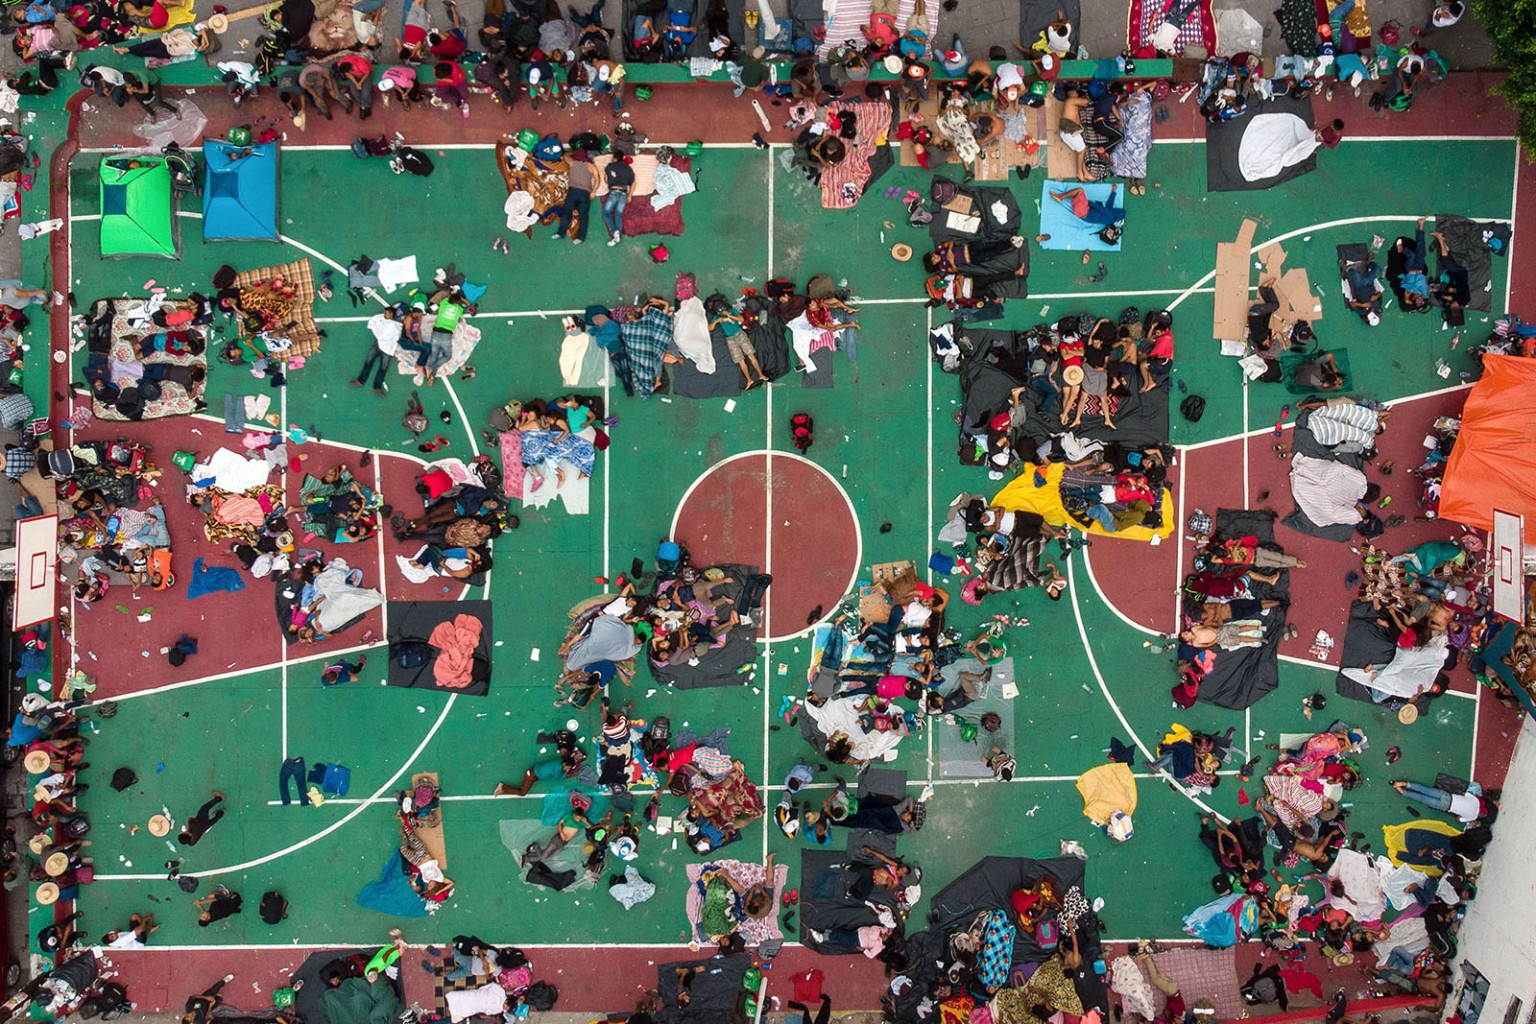 Honduran migrants rest on a basketball court in San Pedro Tapanatepec, southern Mexico, during thier trip toward the United States on Oct. 28. GUILLERMO ARIAS/AFP/Getty Images